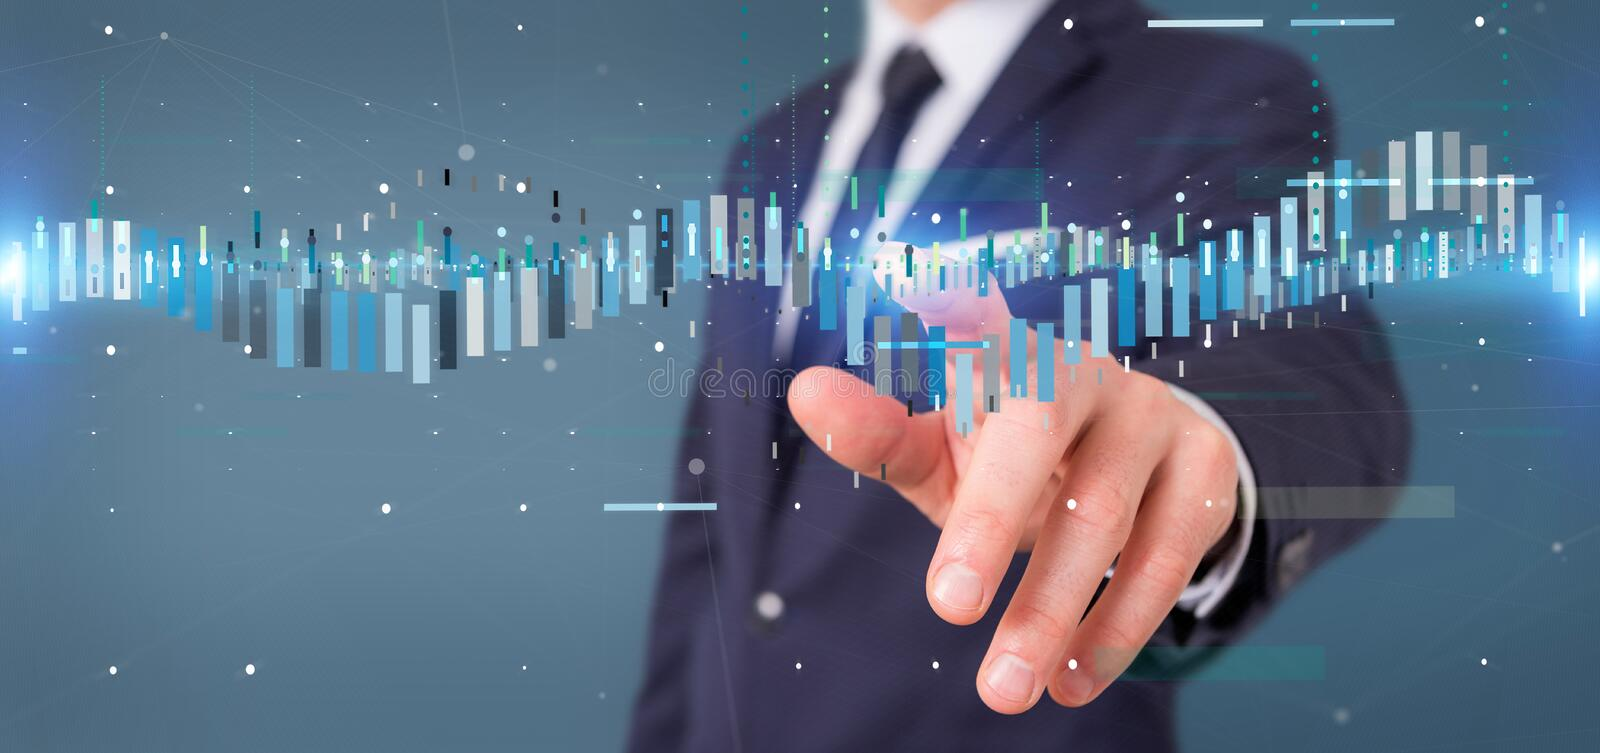 Businessman holding a Business stock exchange trading data information stock photos